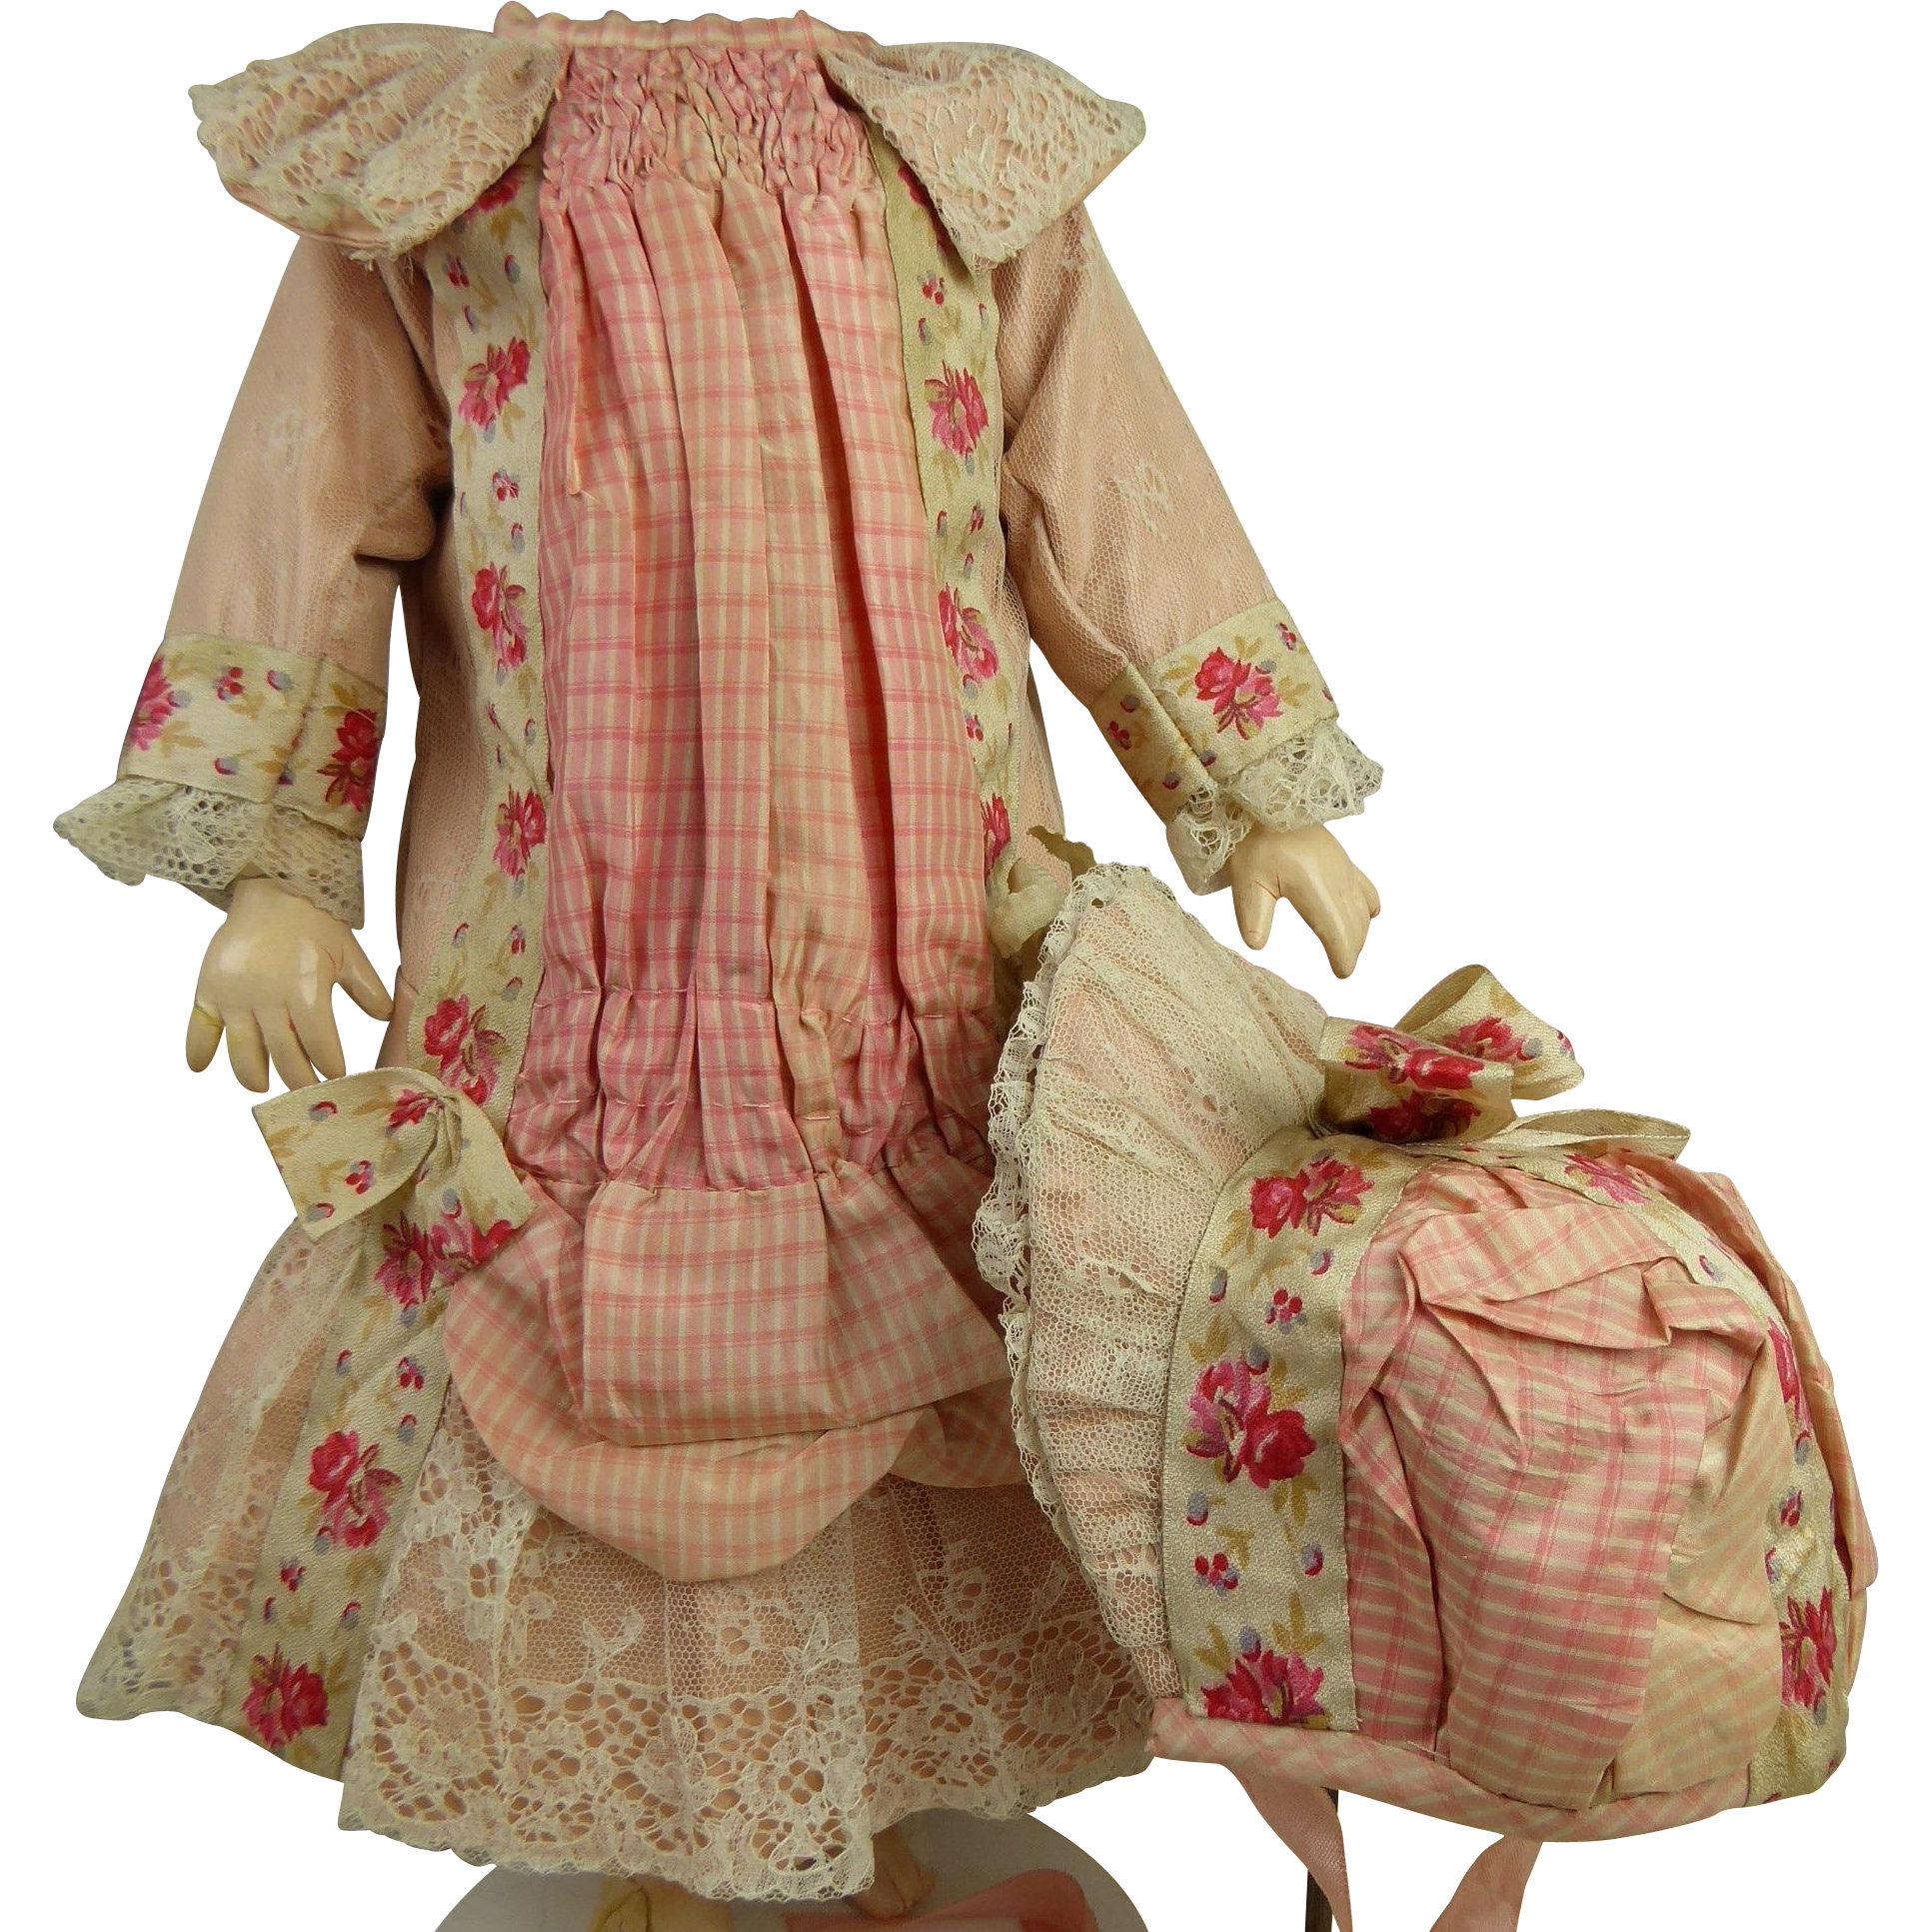 French pink satin and checkered lace one-piece couturier antique doll dress with matching bonnet for Jumeau, Bru, Steiner, Gaultier or other Bébé